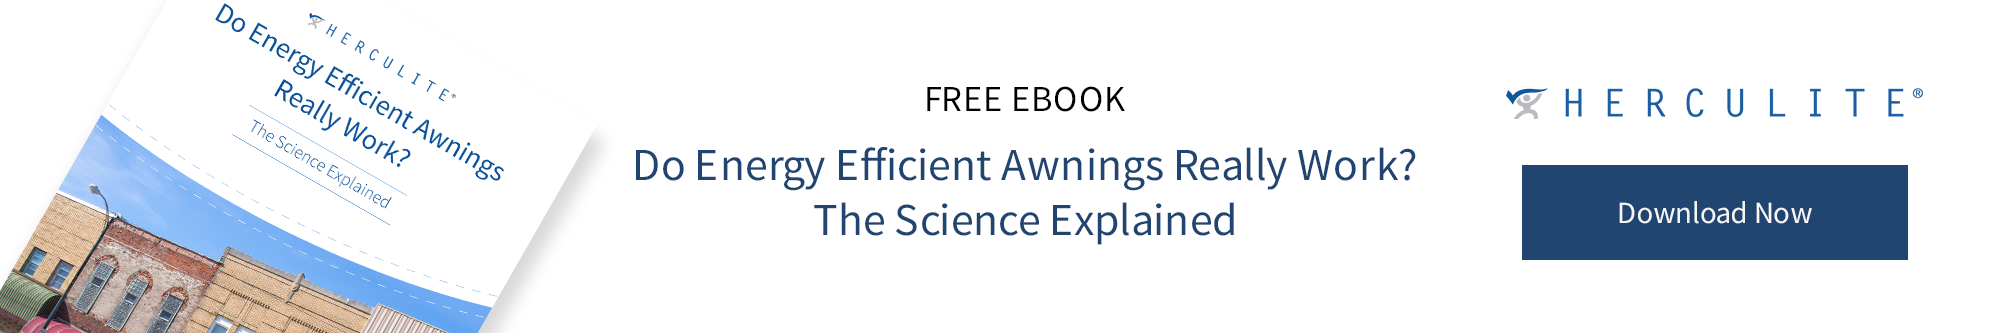 Do Energy Efficient Awnings Really Work? Ebook Herculite